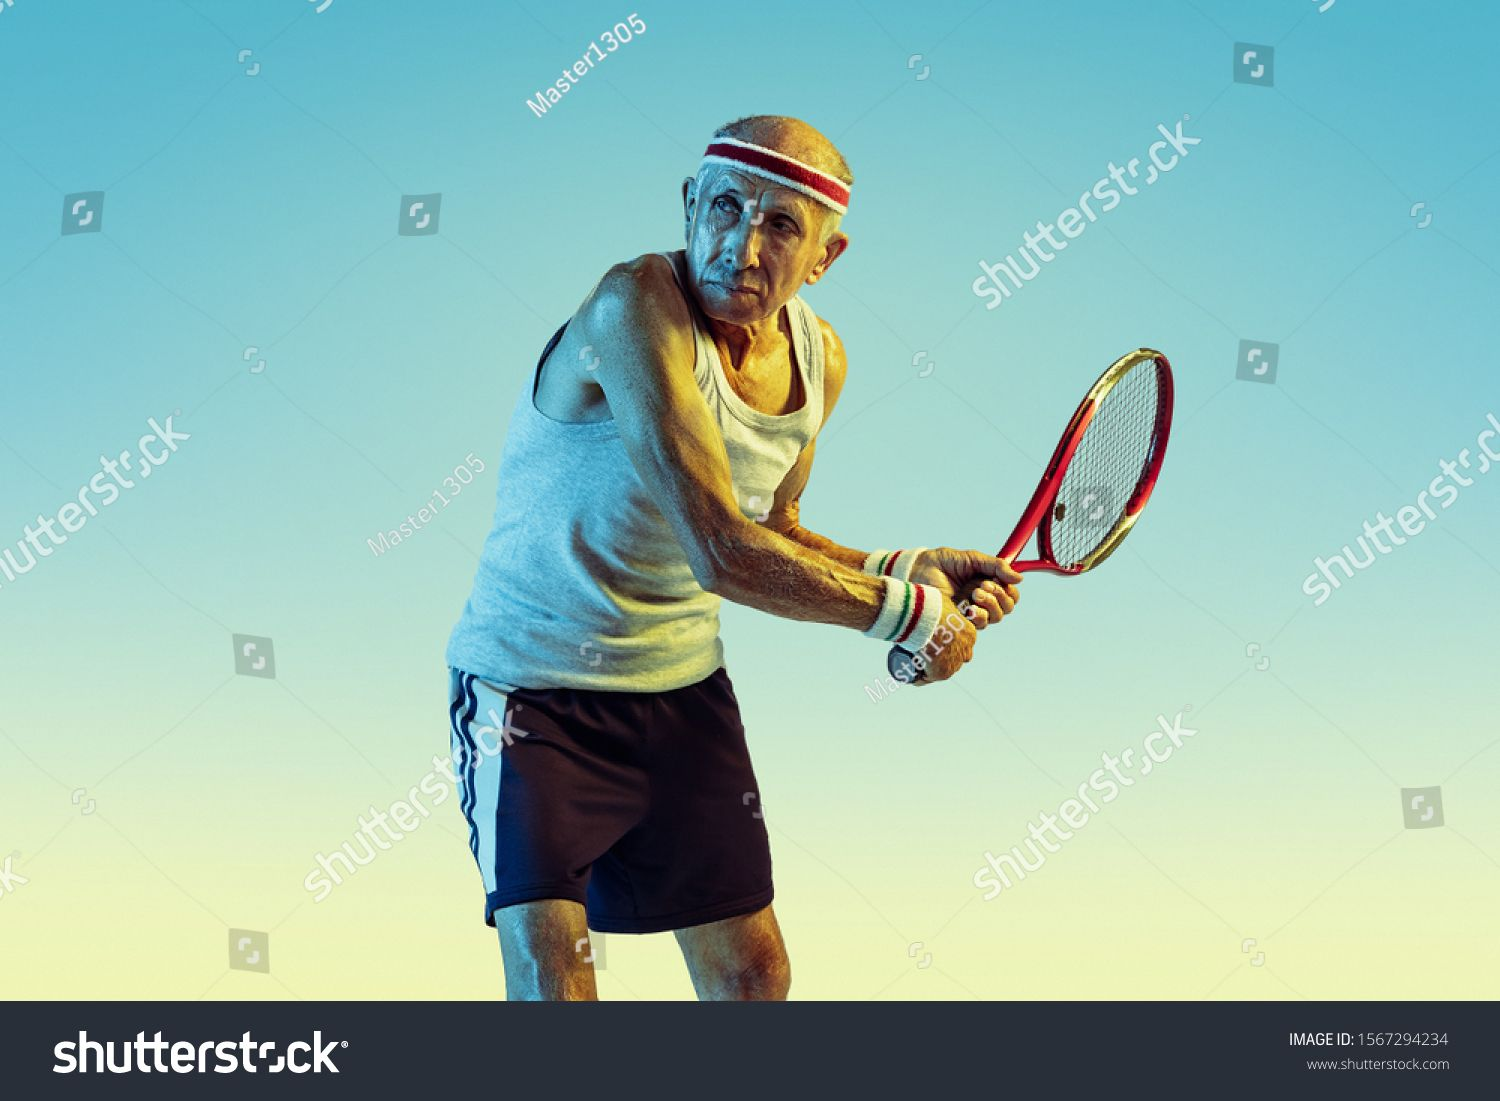 Senior Man Wearing Sportwear Playing Tennis On Gradient Background Neon Light Caucasian Male Model In Great Shape Stays Active Spor Photo Editing Tennis Man